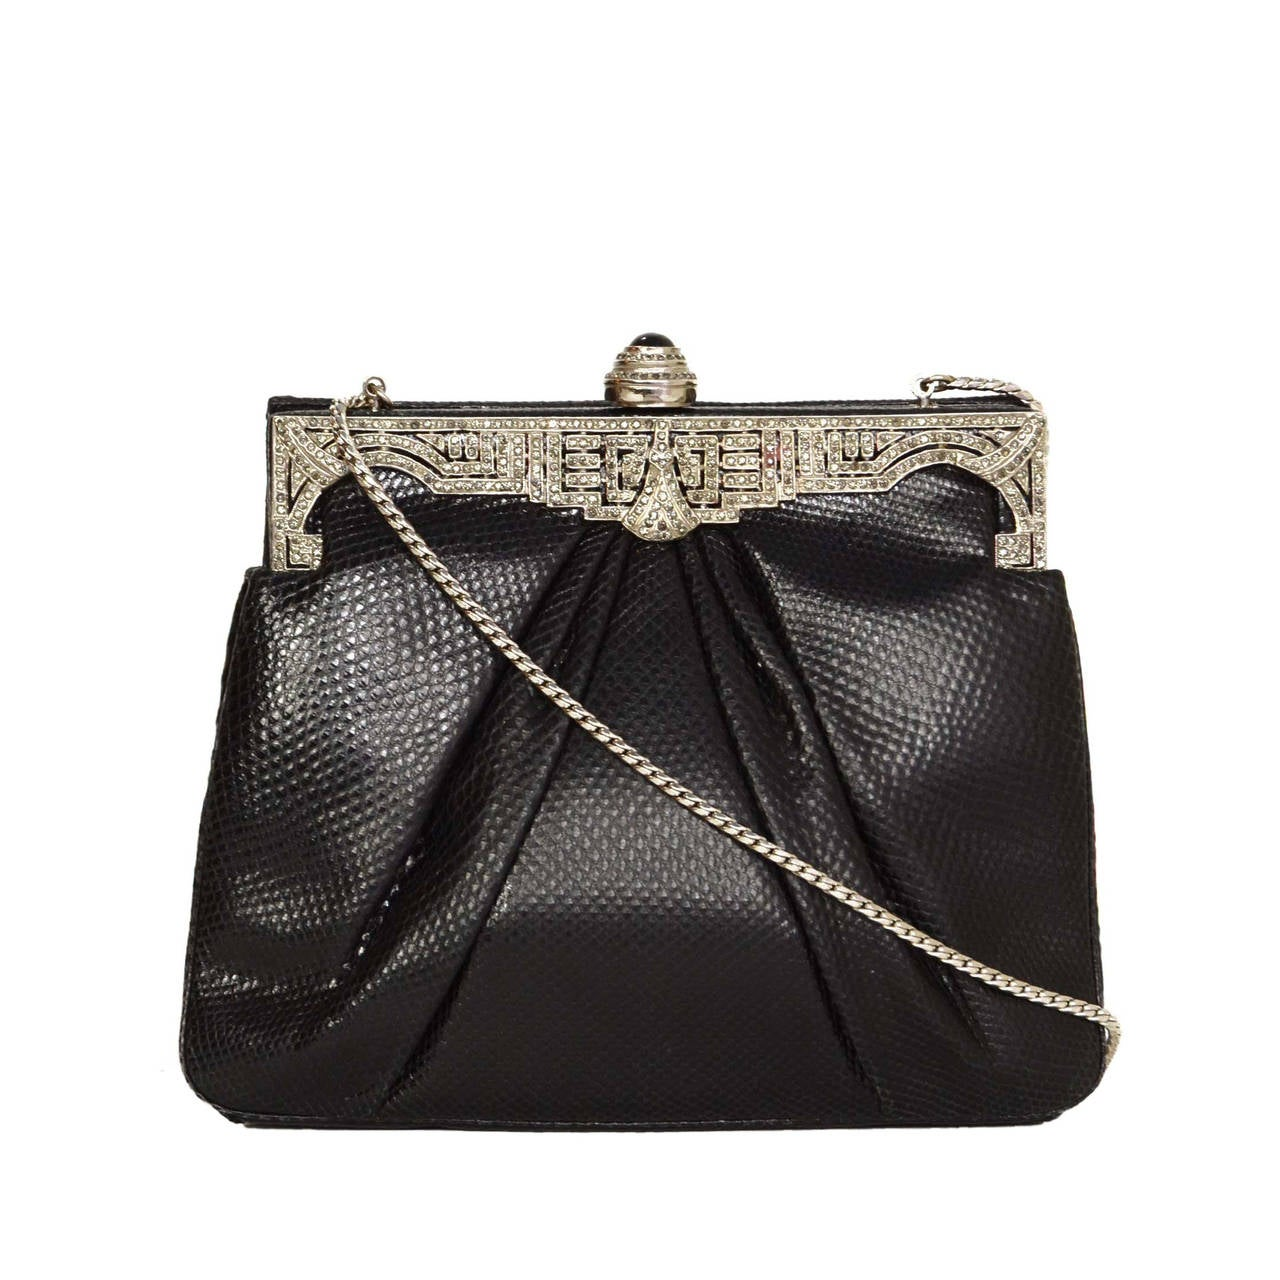 JUDITH LEIBER Black Lizard Skin & Rhinestone Evening Bag SHW For Sale